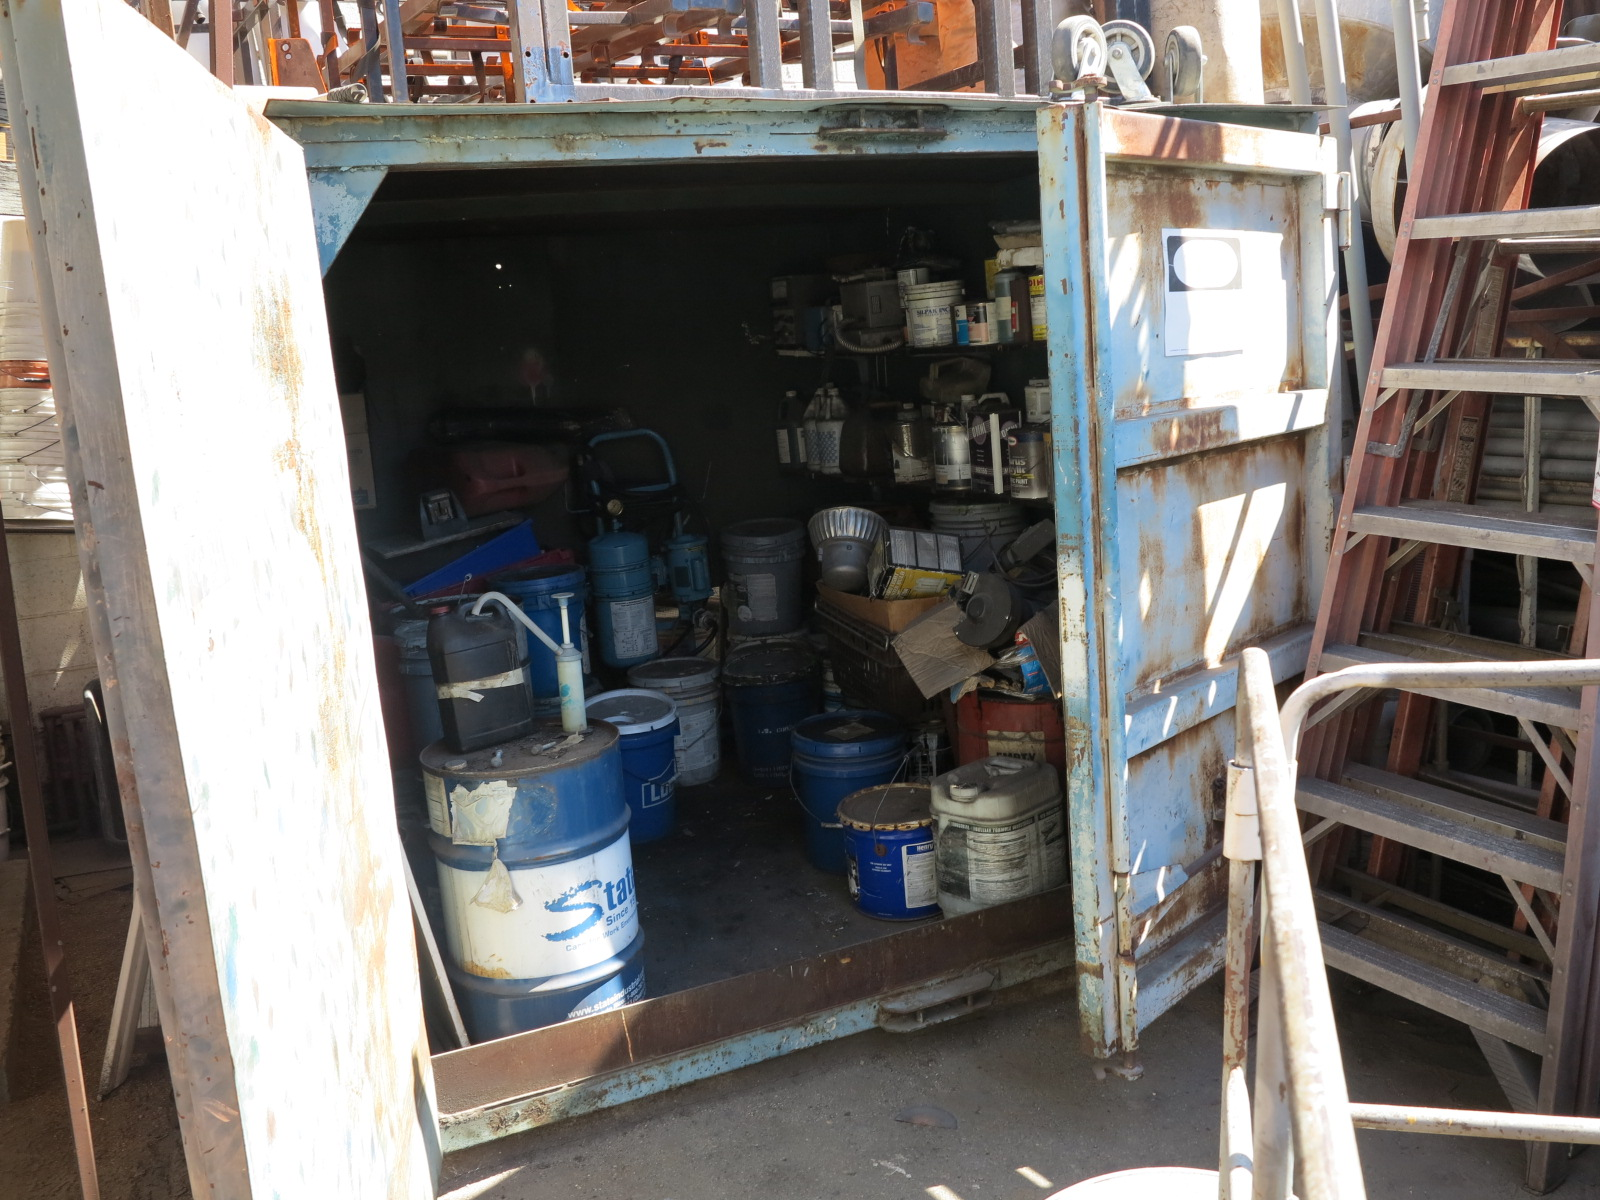 Lot 21 - 8' X 8' X 6' STORAGE CONTAINER